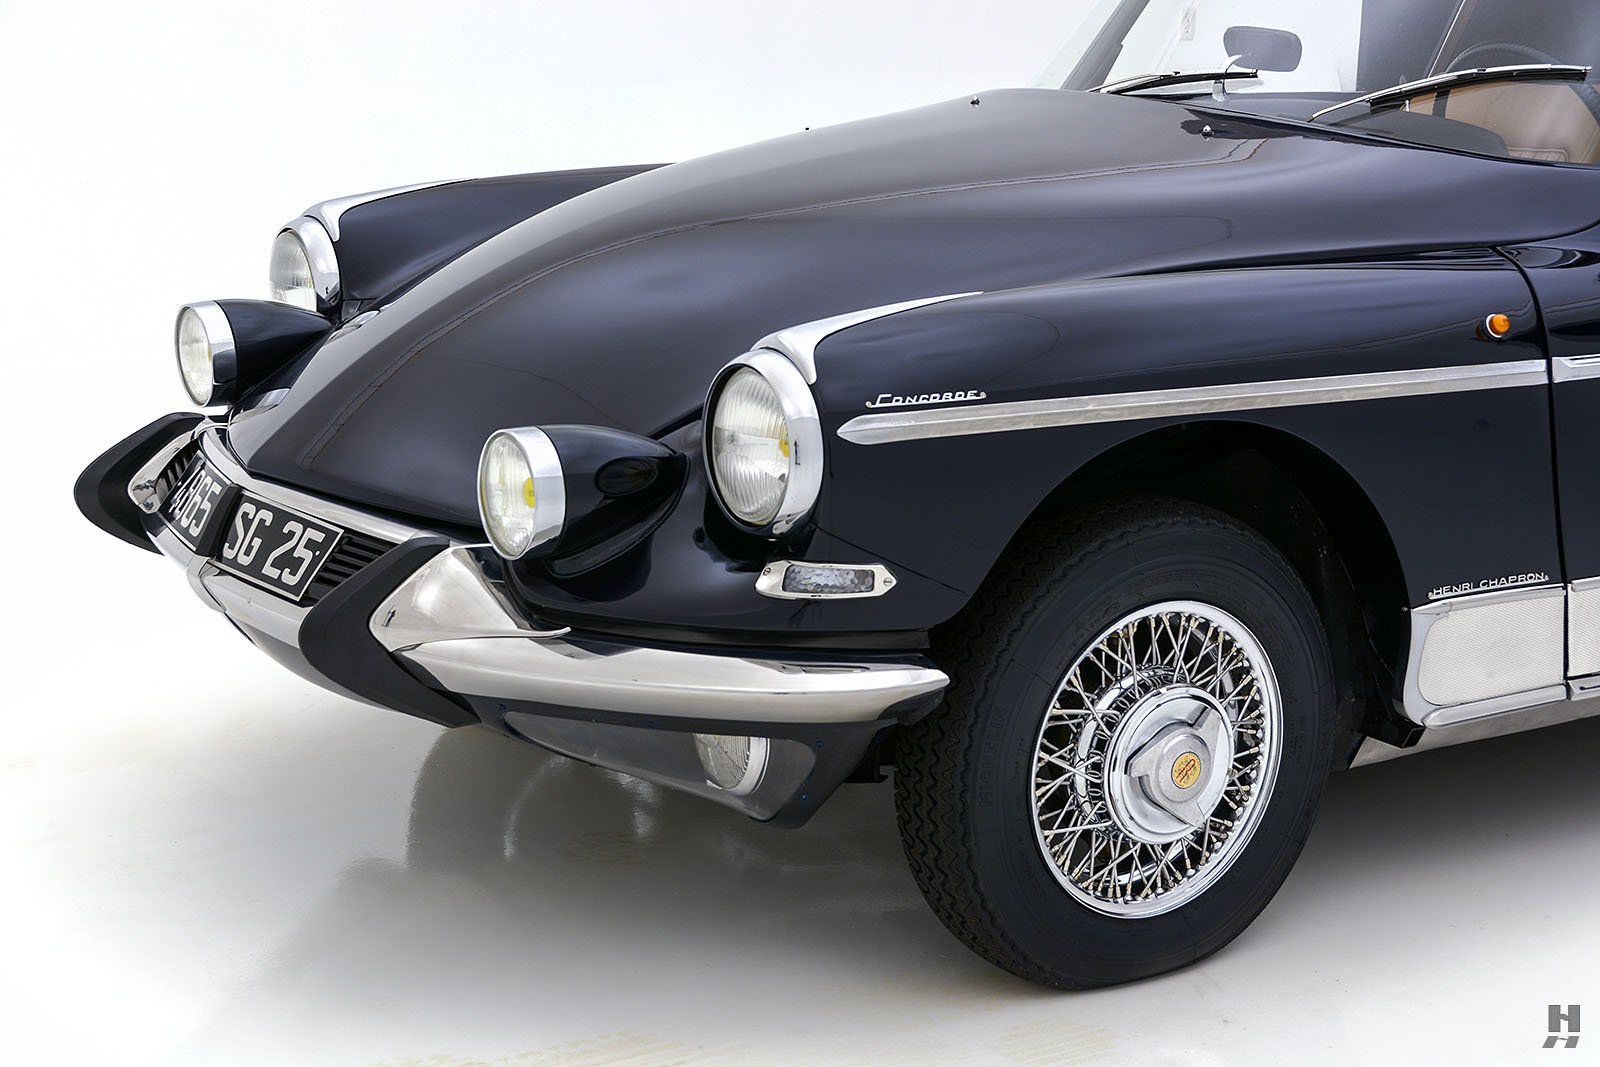 Citroen-DS21-Concorde-coupe-for-sale-23